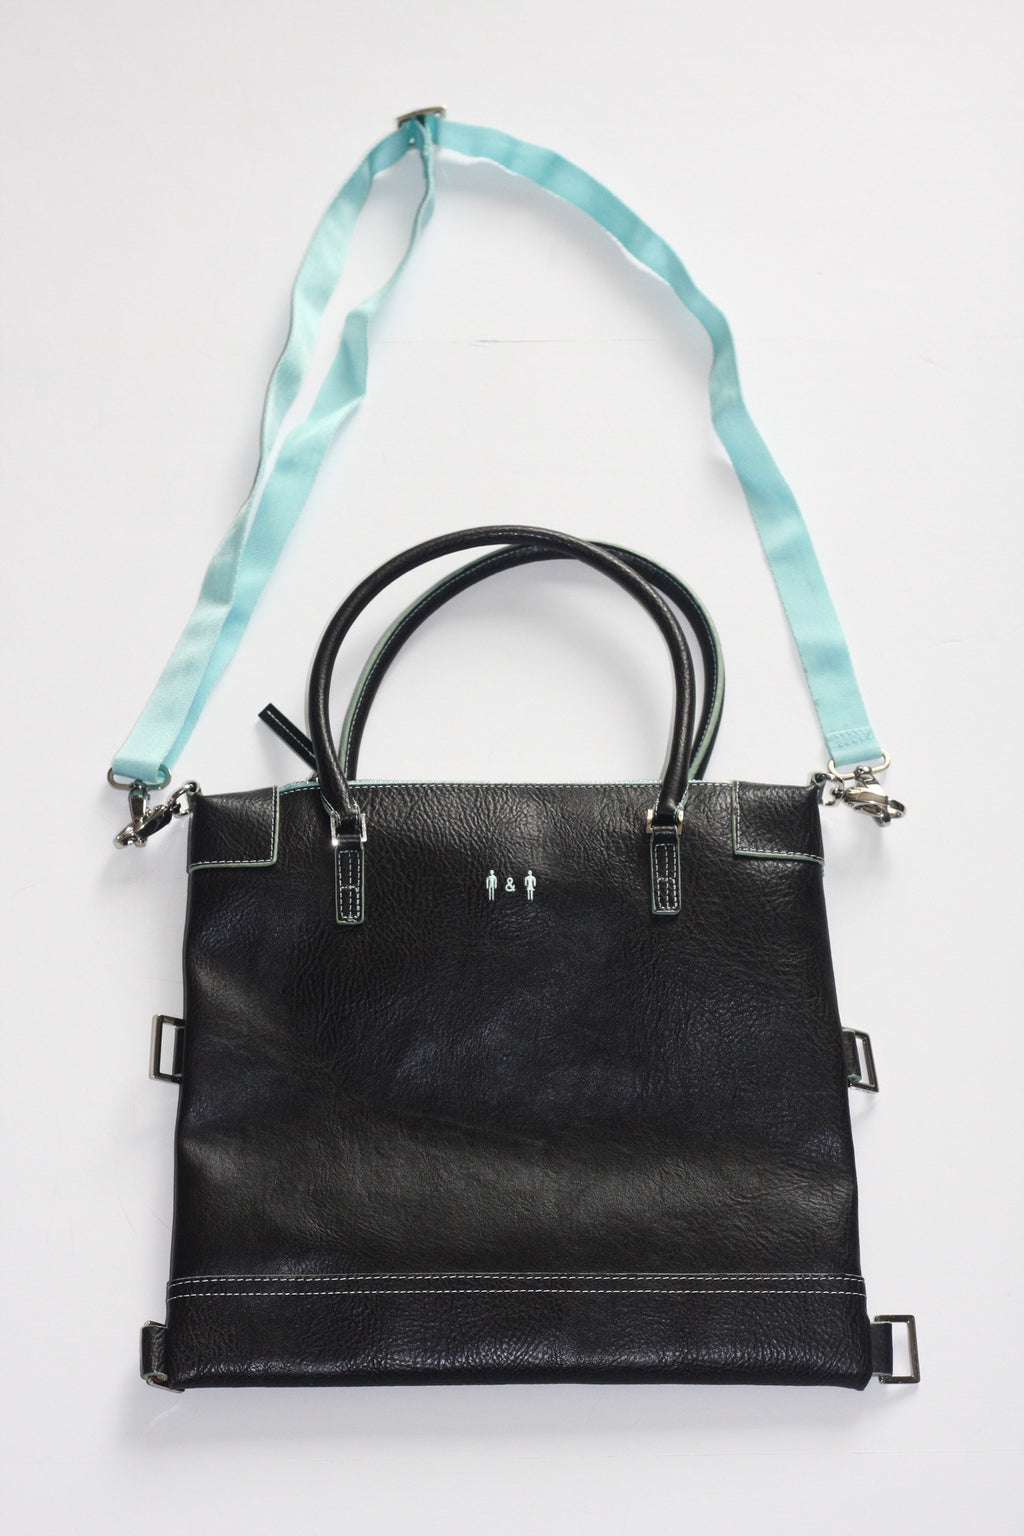 Via Vegan By Mat & Nat Dark Brown  Cross Body Bag - Joyce's Closet  - 1